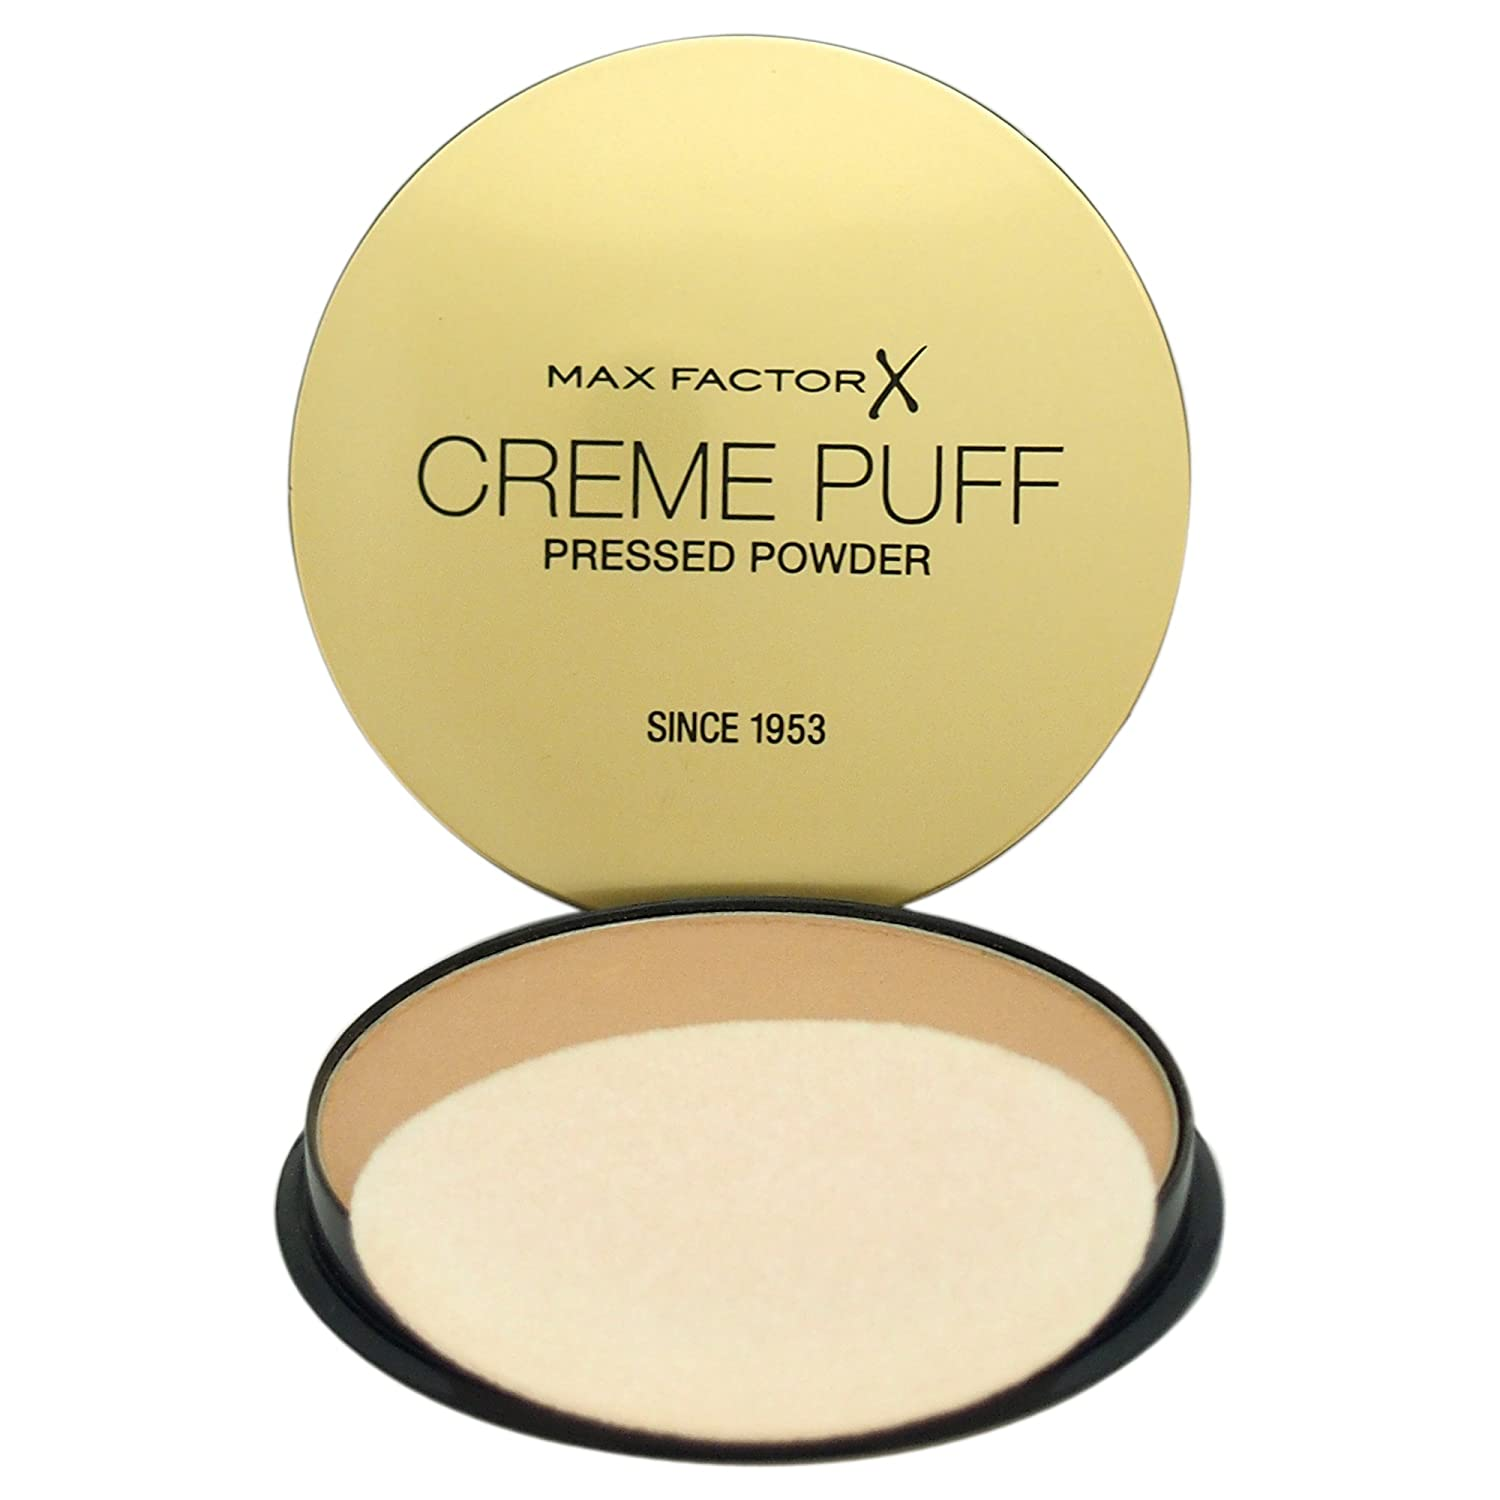 Max Factor Creme Puff Foundation, No.05 Translucent, 0.74 Ounce